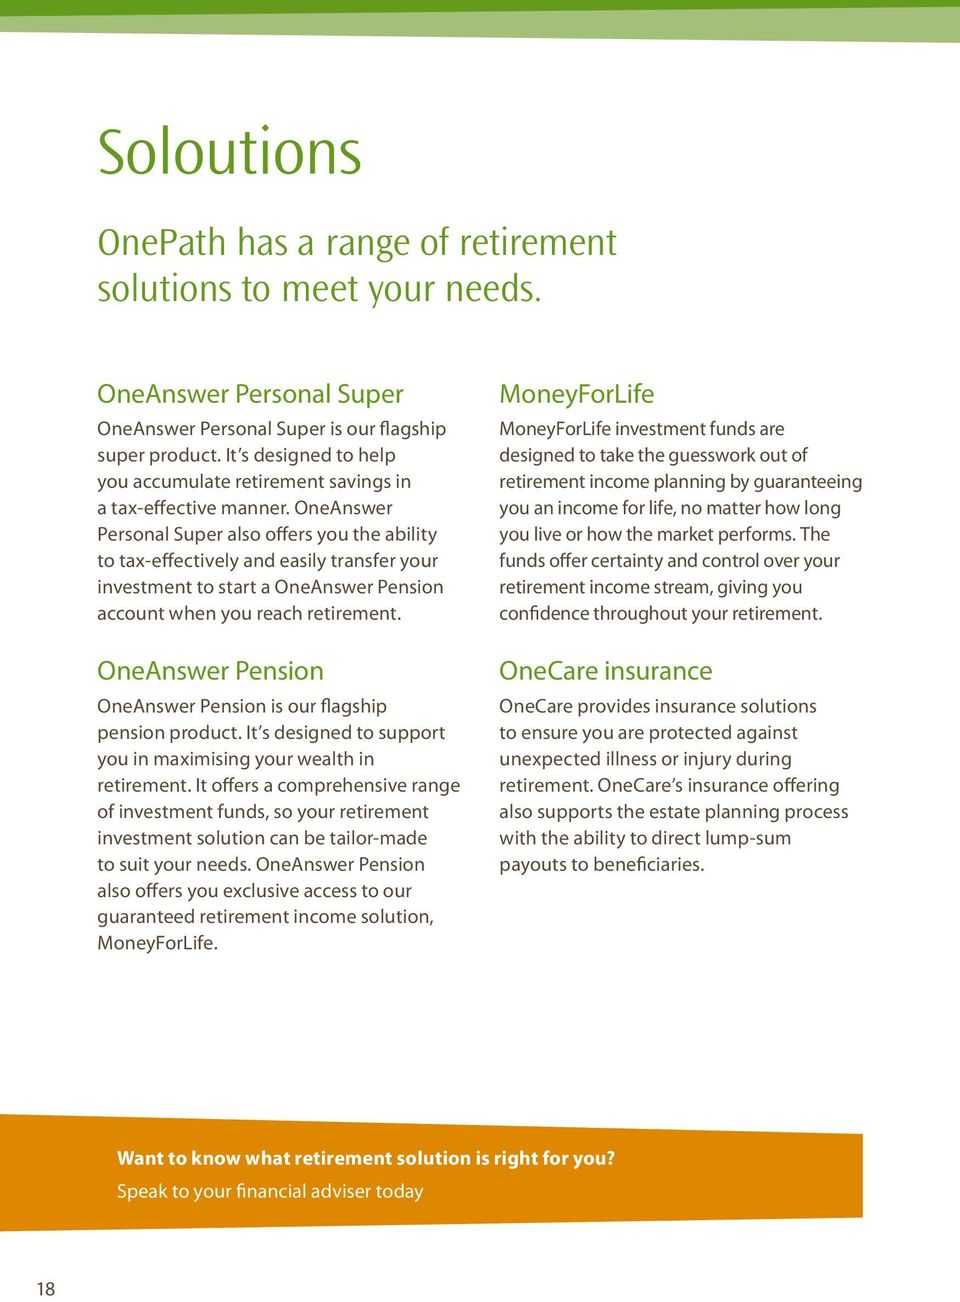 OneAnswer Personal Super also offers you the ability to tax-effectively and easily transfer your investment to start a OneAnswer Pension account when you reach retirement.